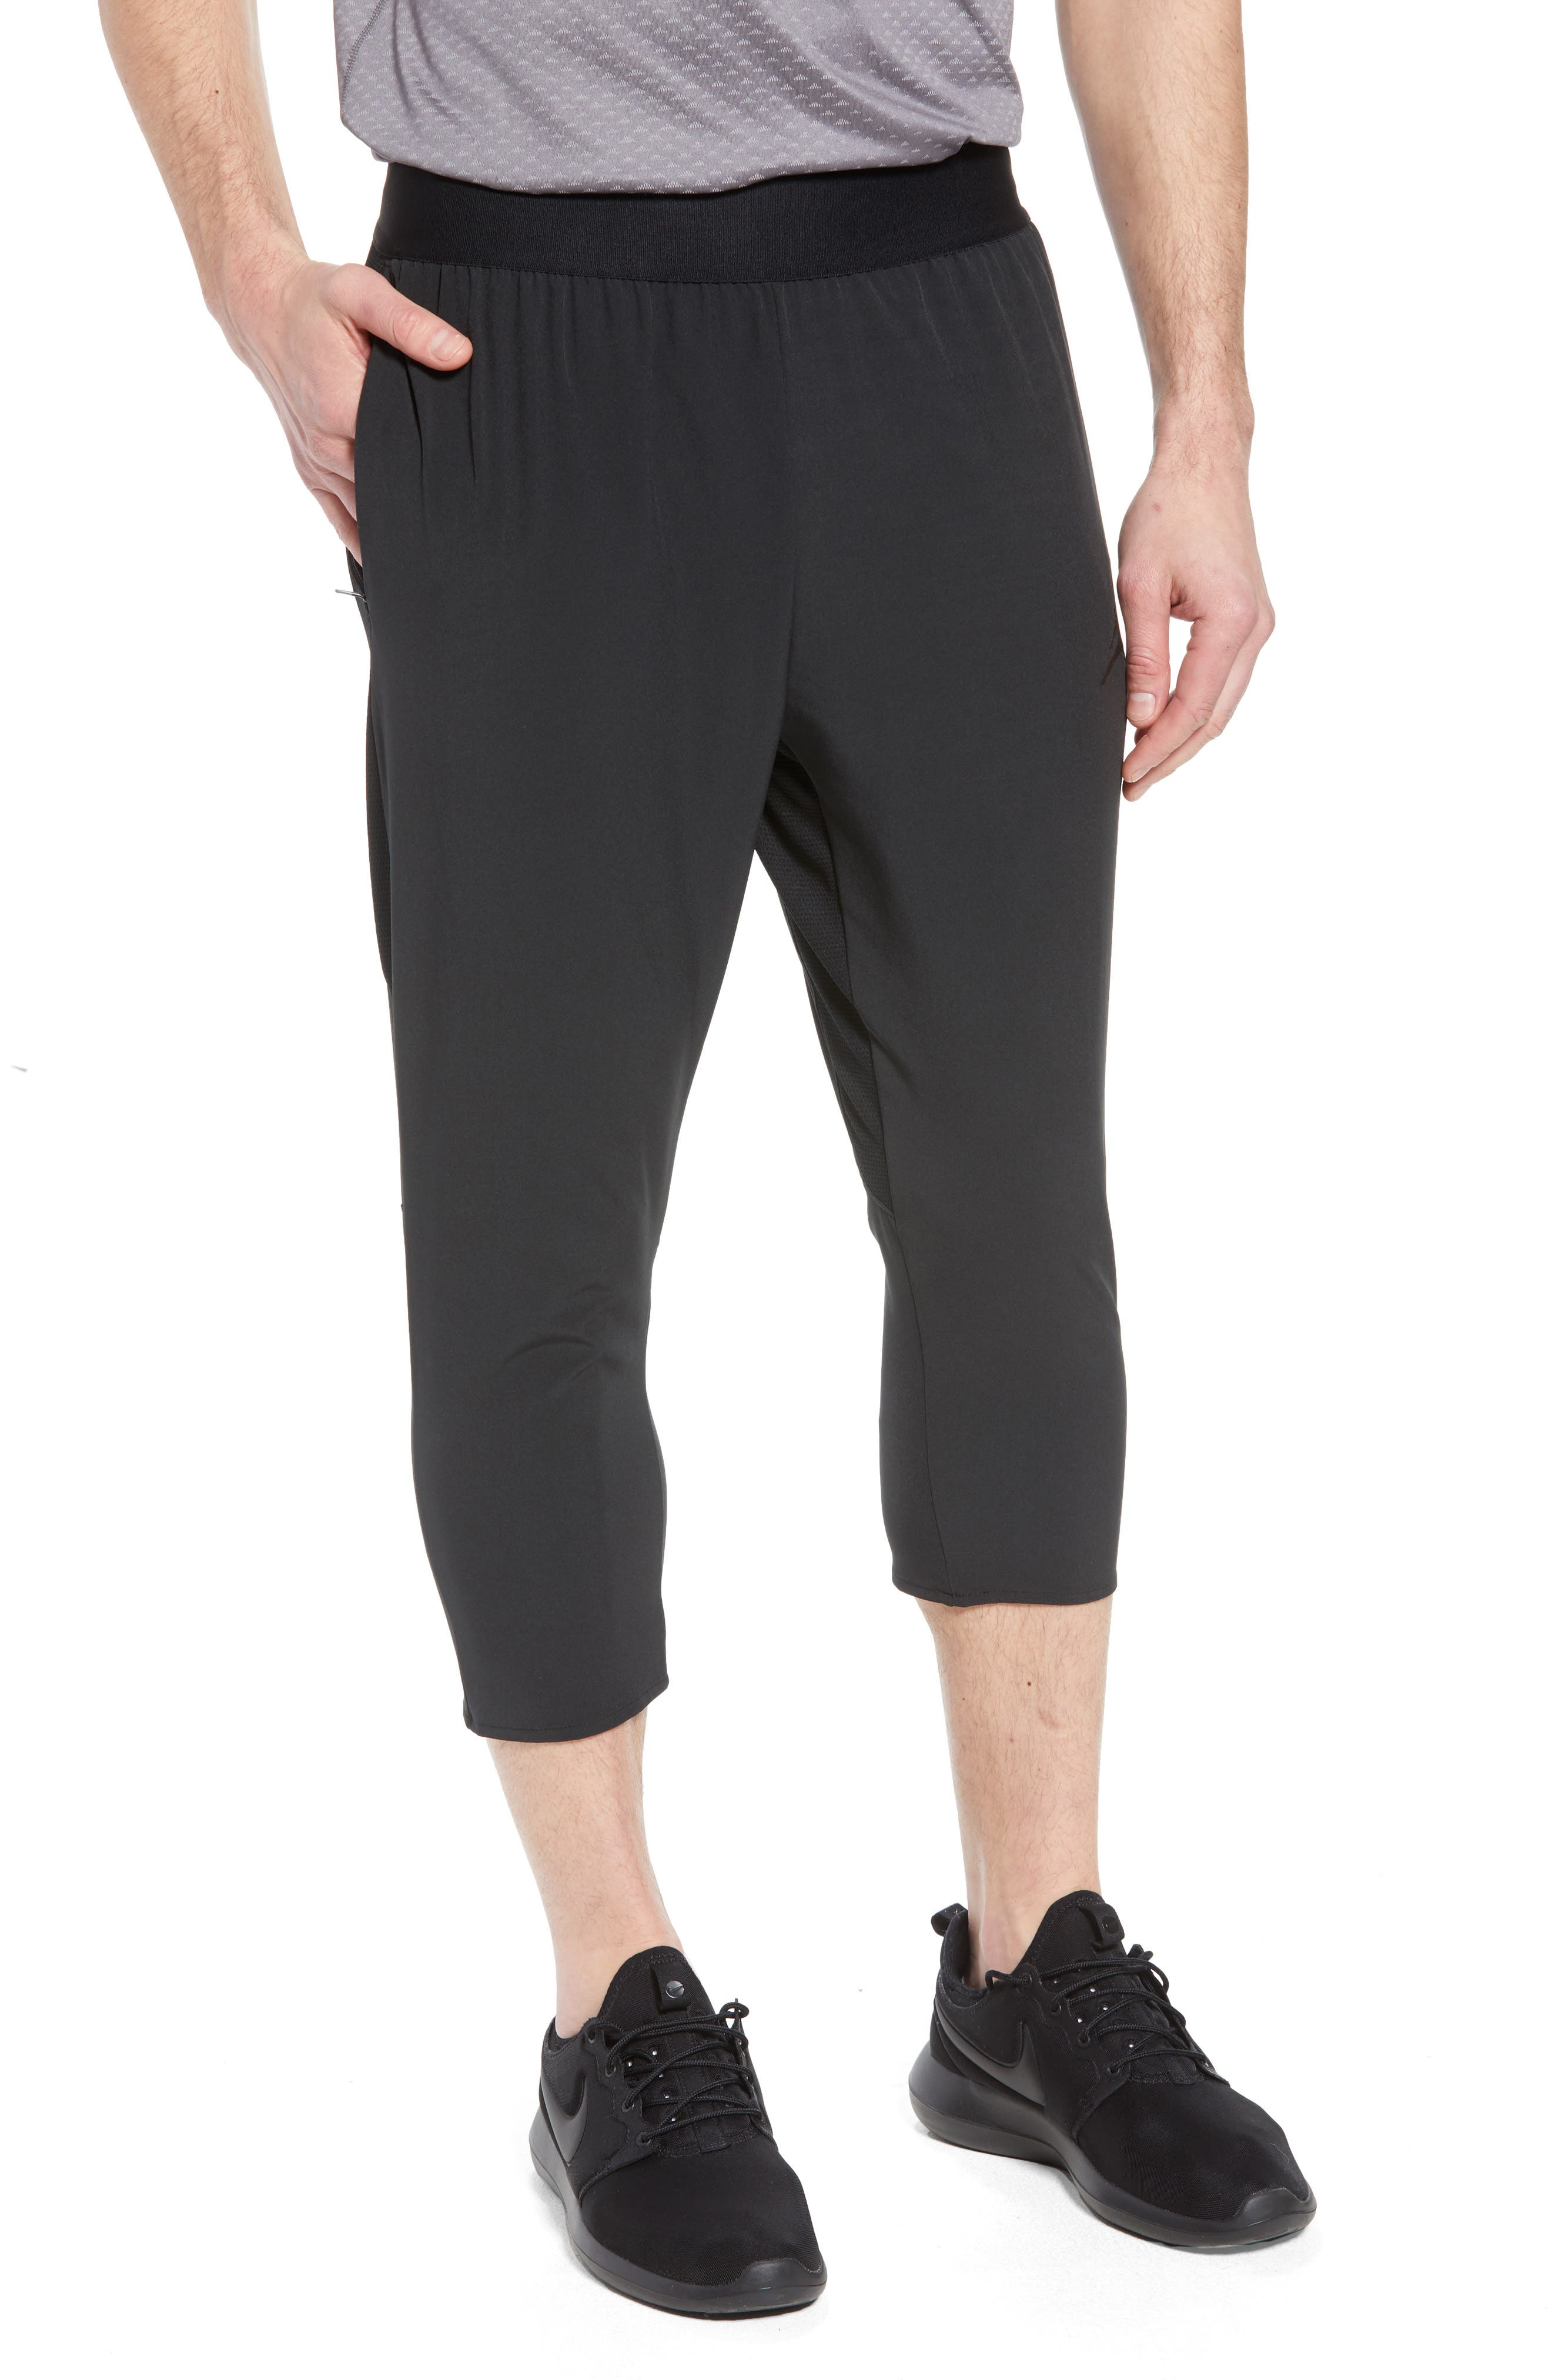 Ult Flight Pants,                             Main thumbnail 1, color,                             Black/ Black